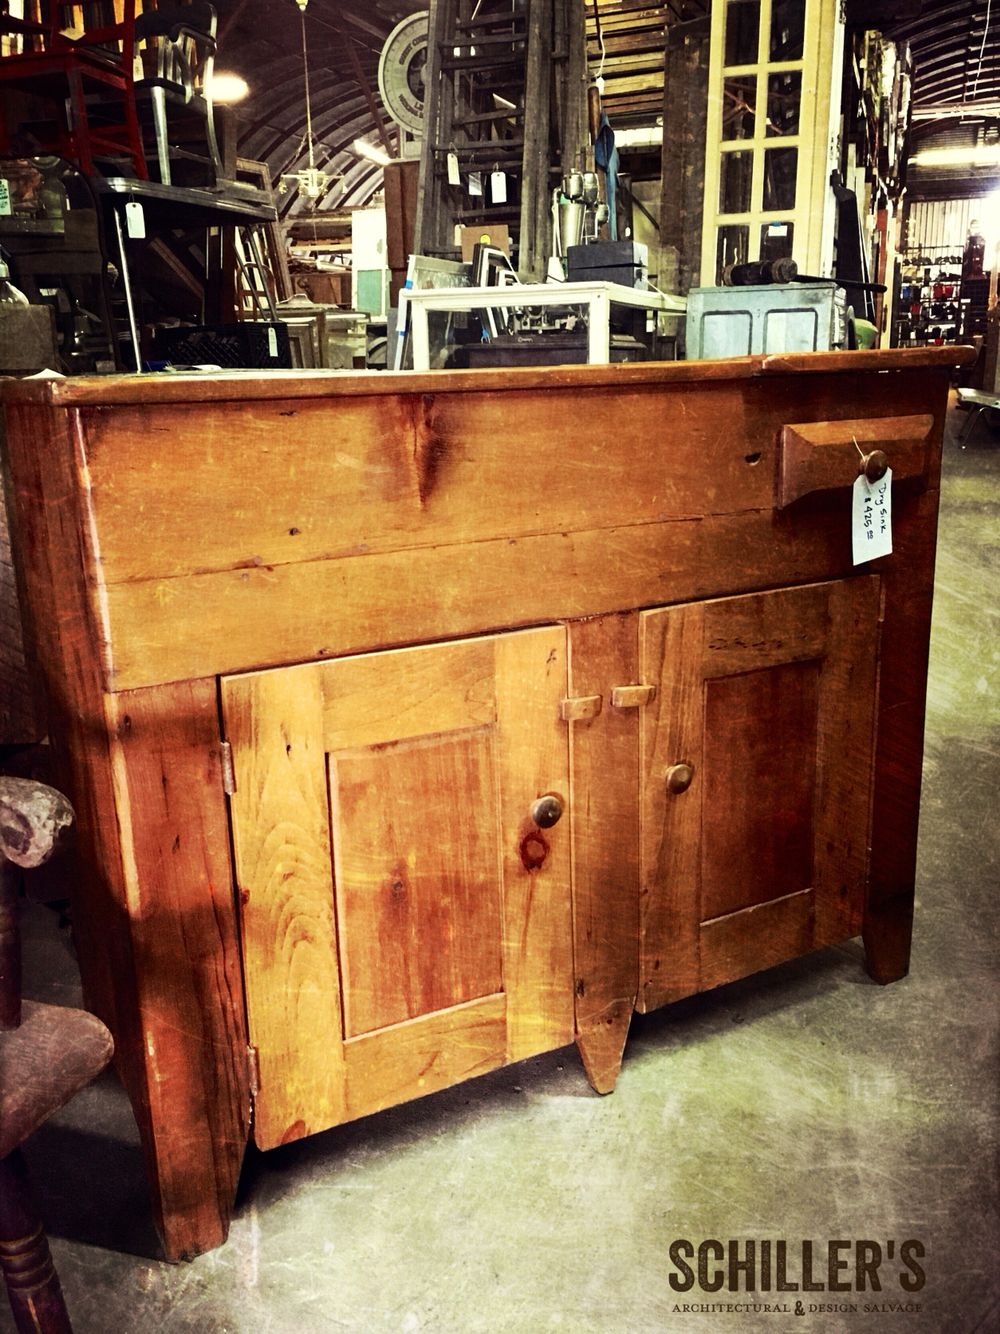 You Can Transform This Dry Sink Vanity Into A Wet Sink Vanity Just Saying Coolfinds Coolstuff Only At Schiller Antique Vanity Dry Sink Repurposed Furniture